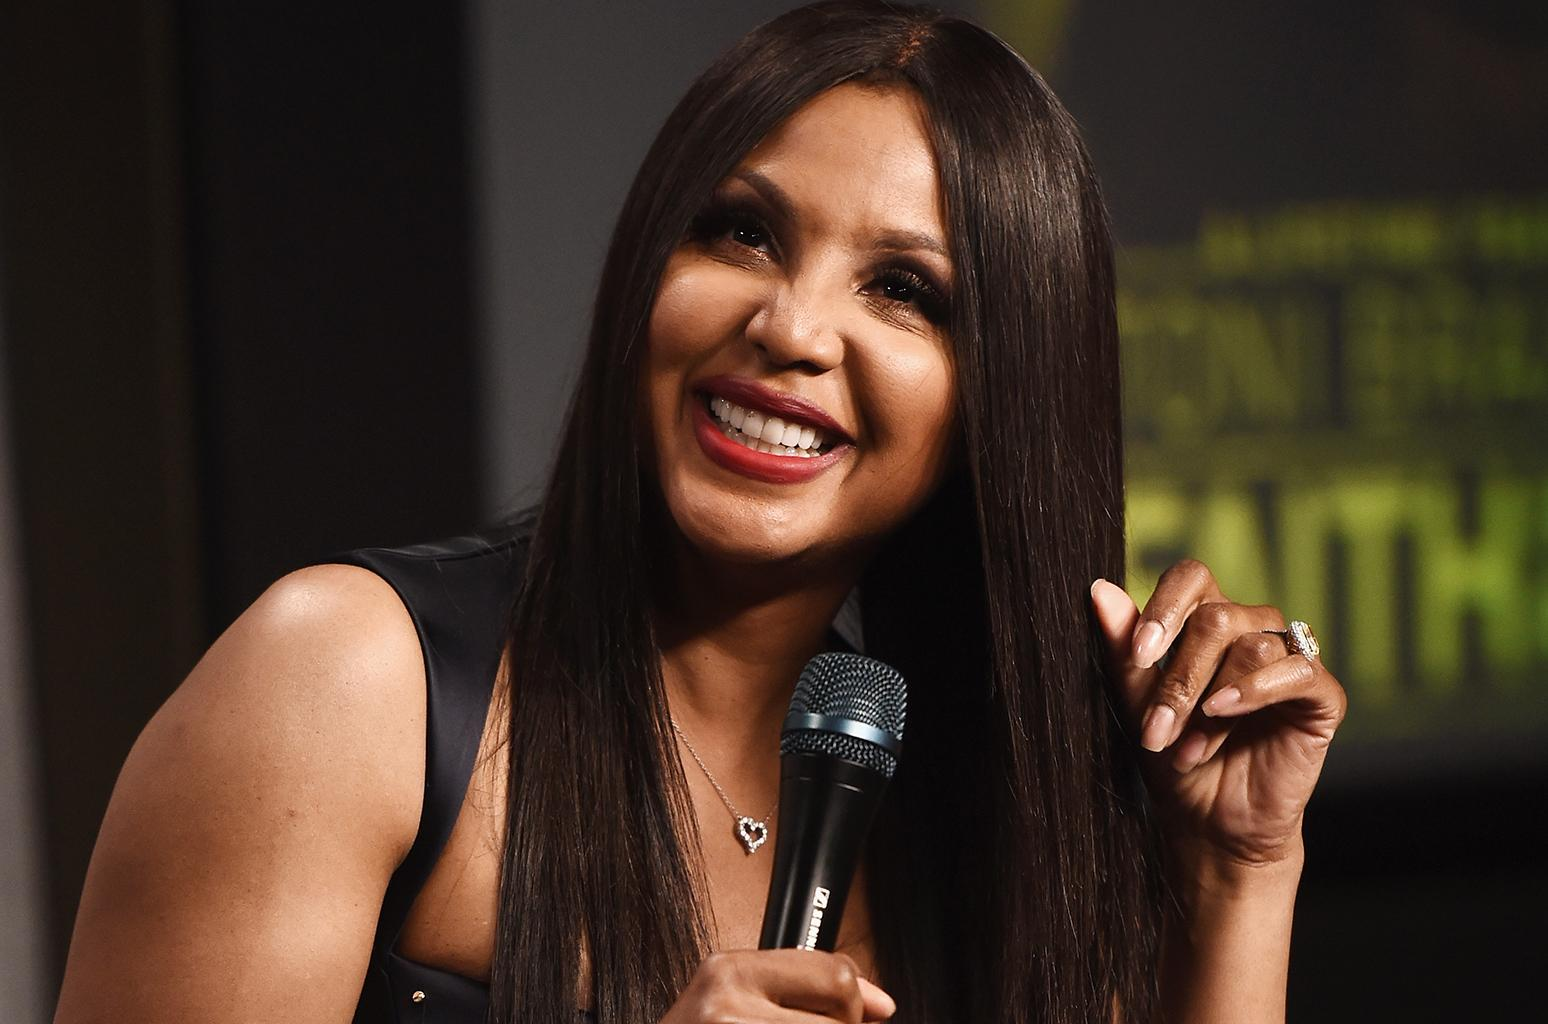 Toni Braxton Spends Some Quality Time With Her Mom And Boys At A Hemp Photoshoot